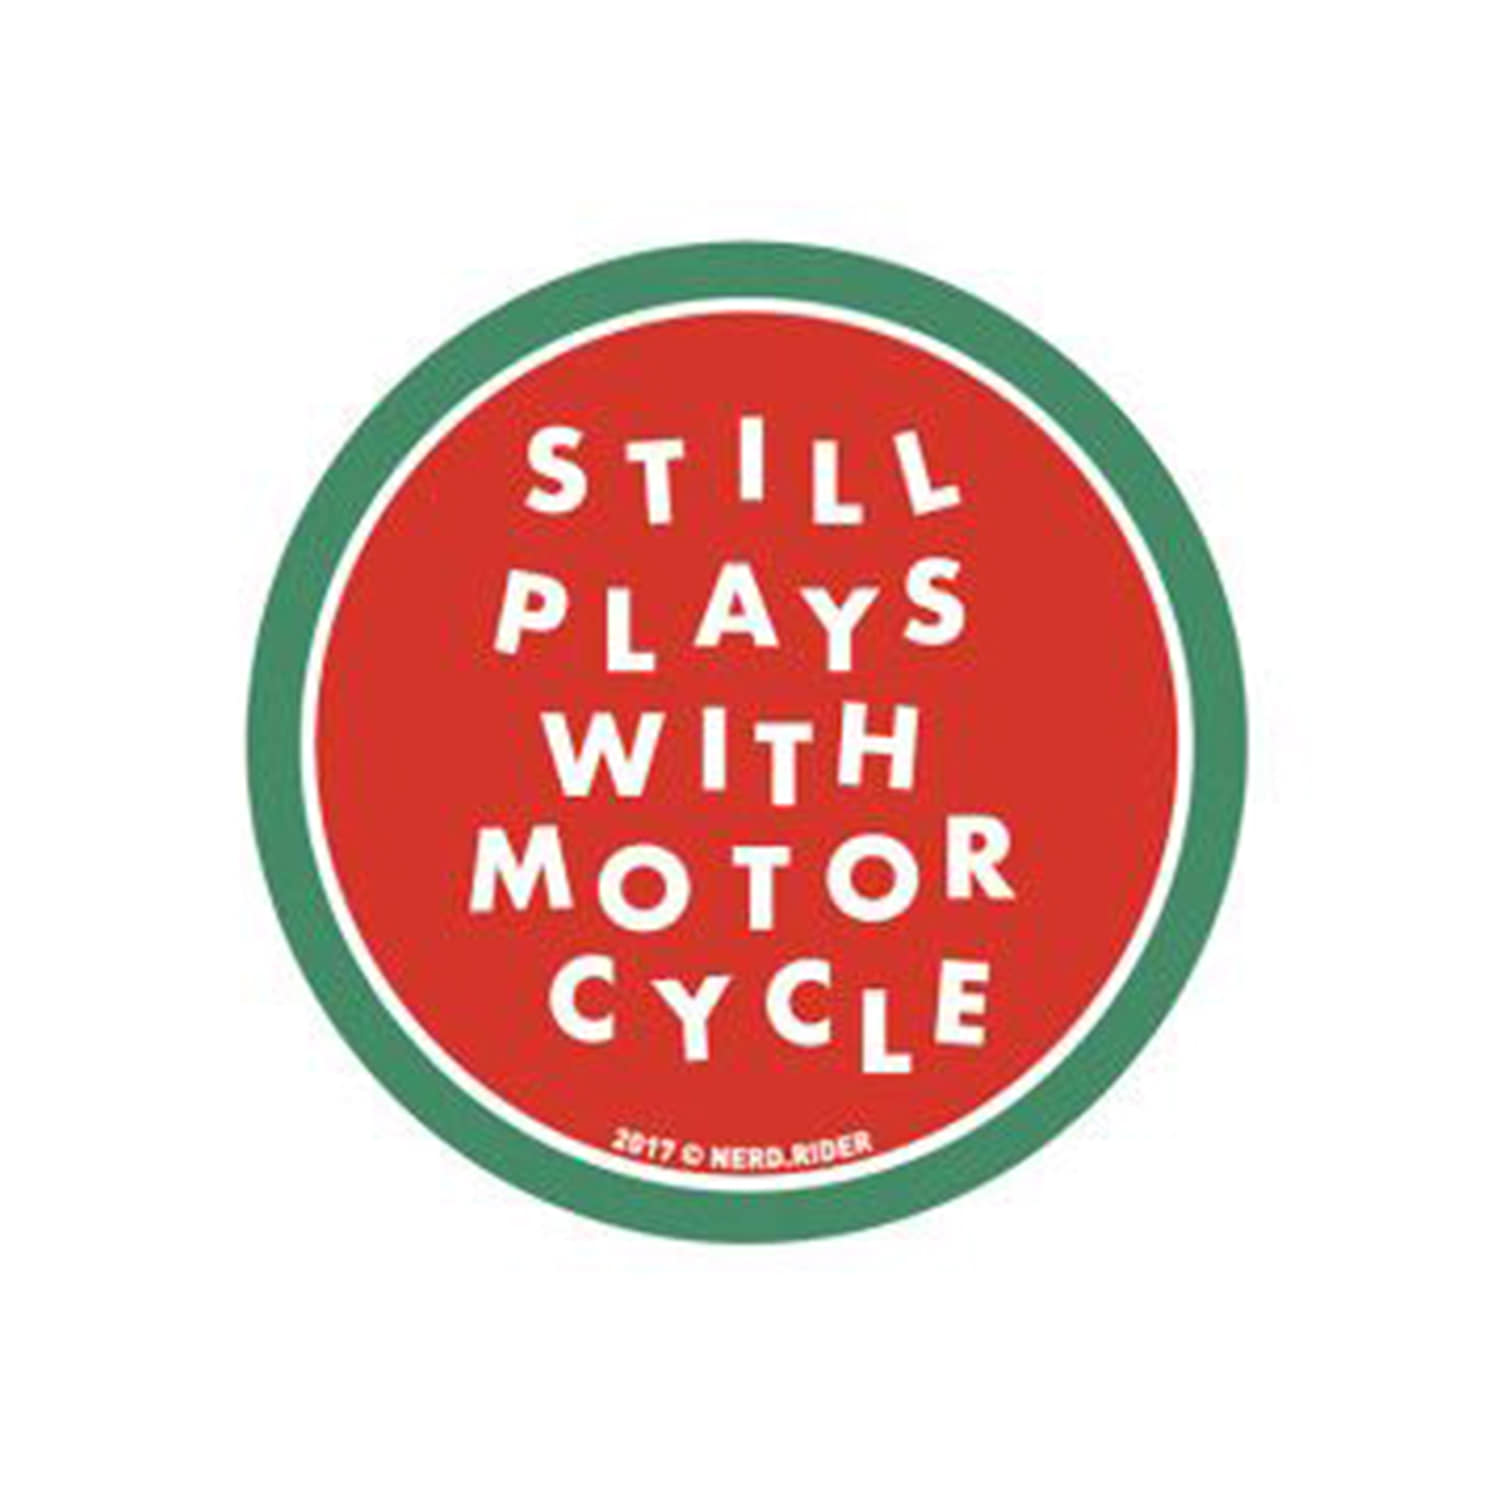 NERD - Still plays motorbikes sticker